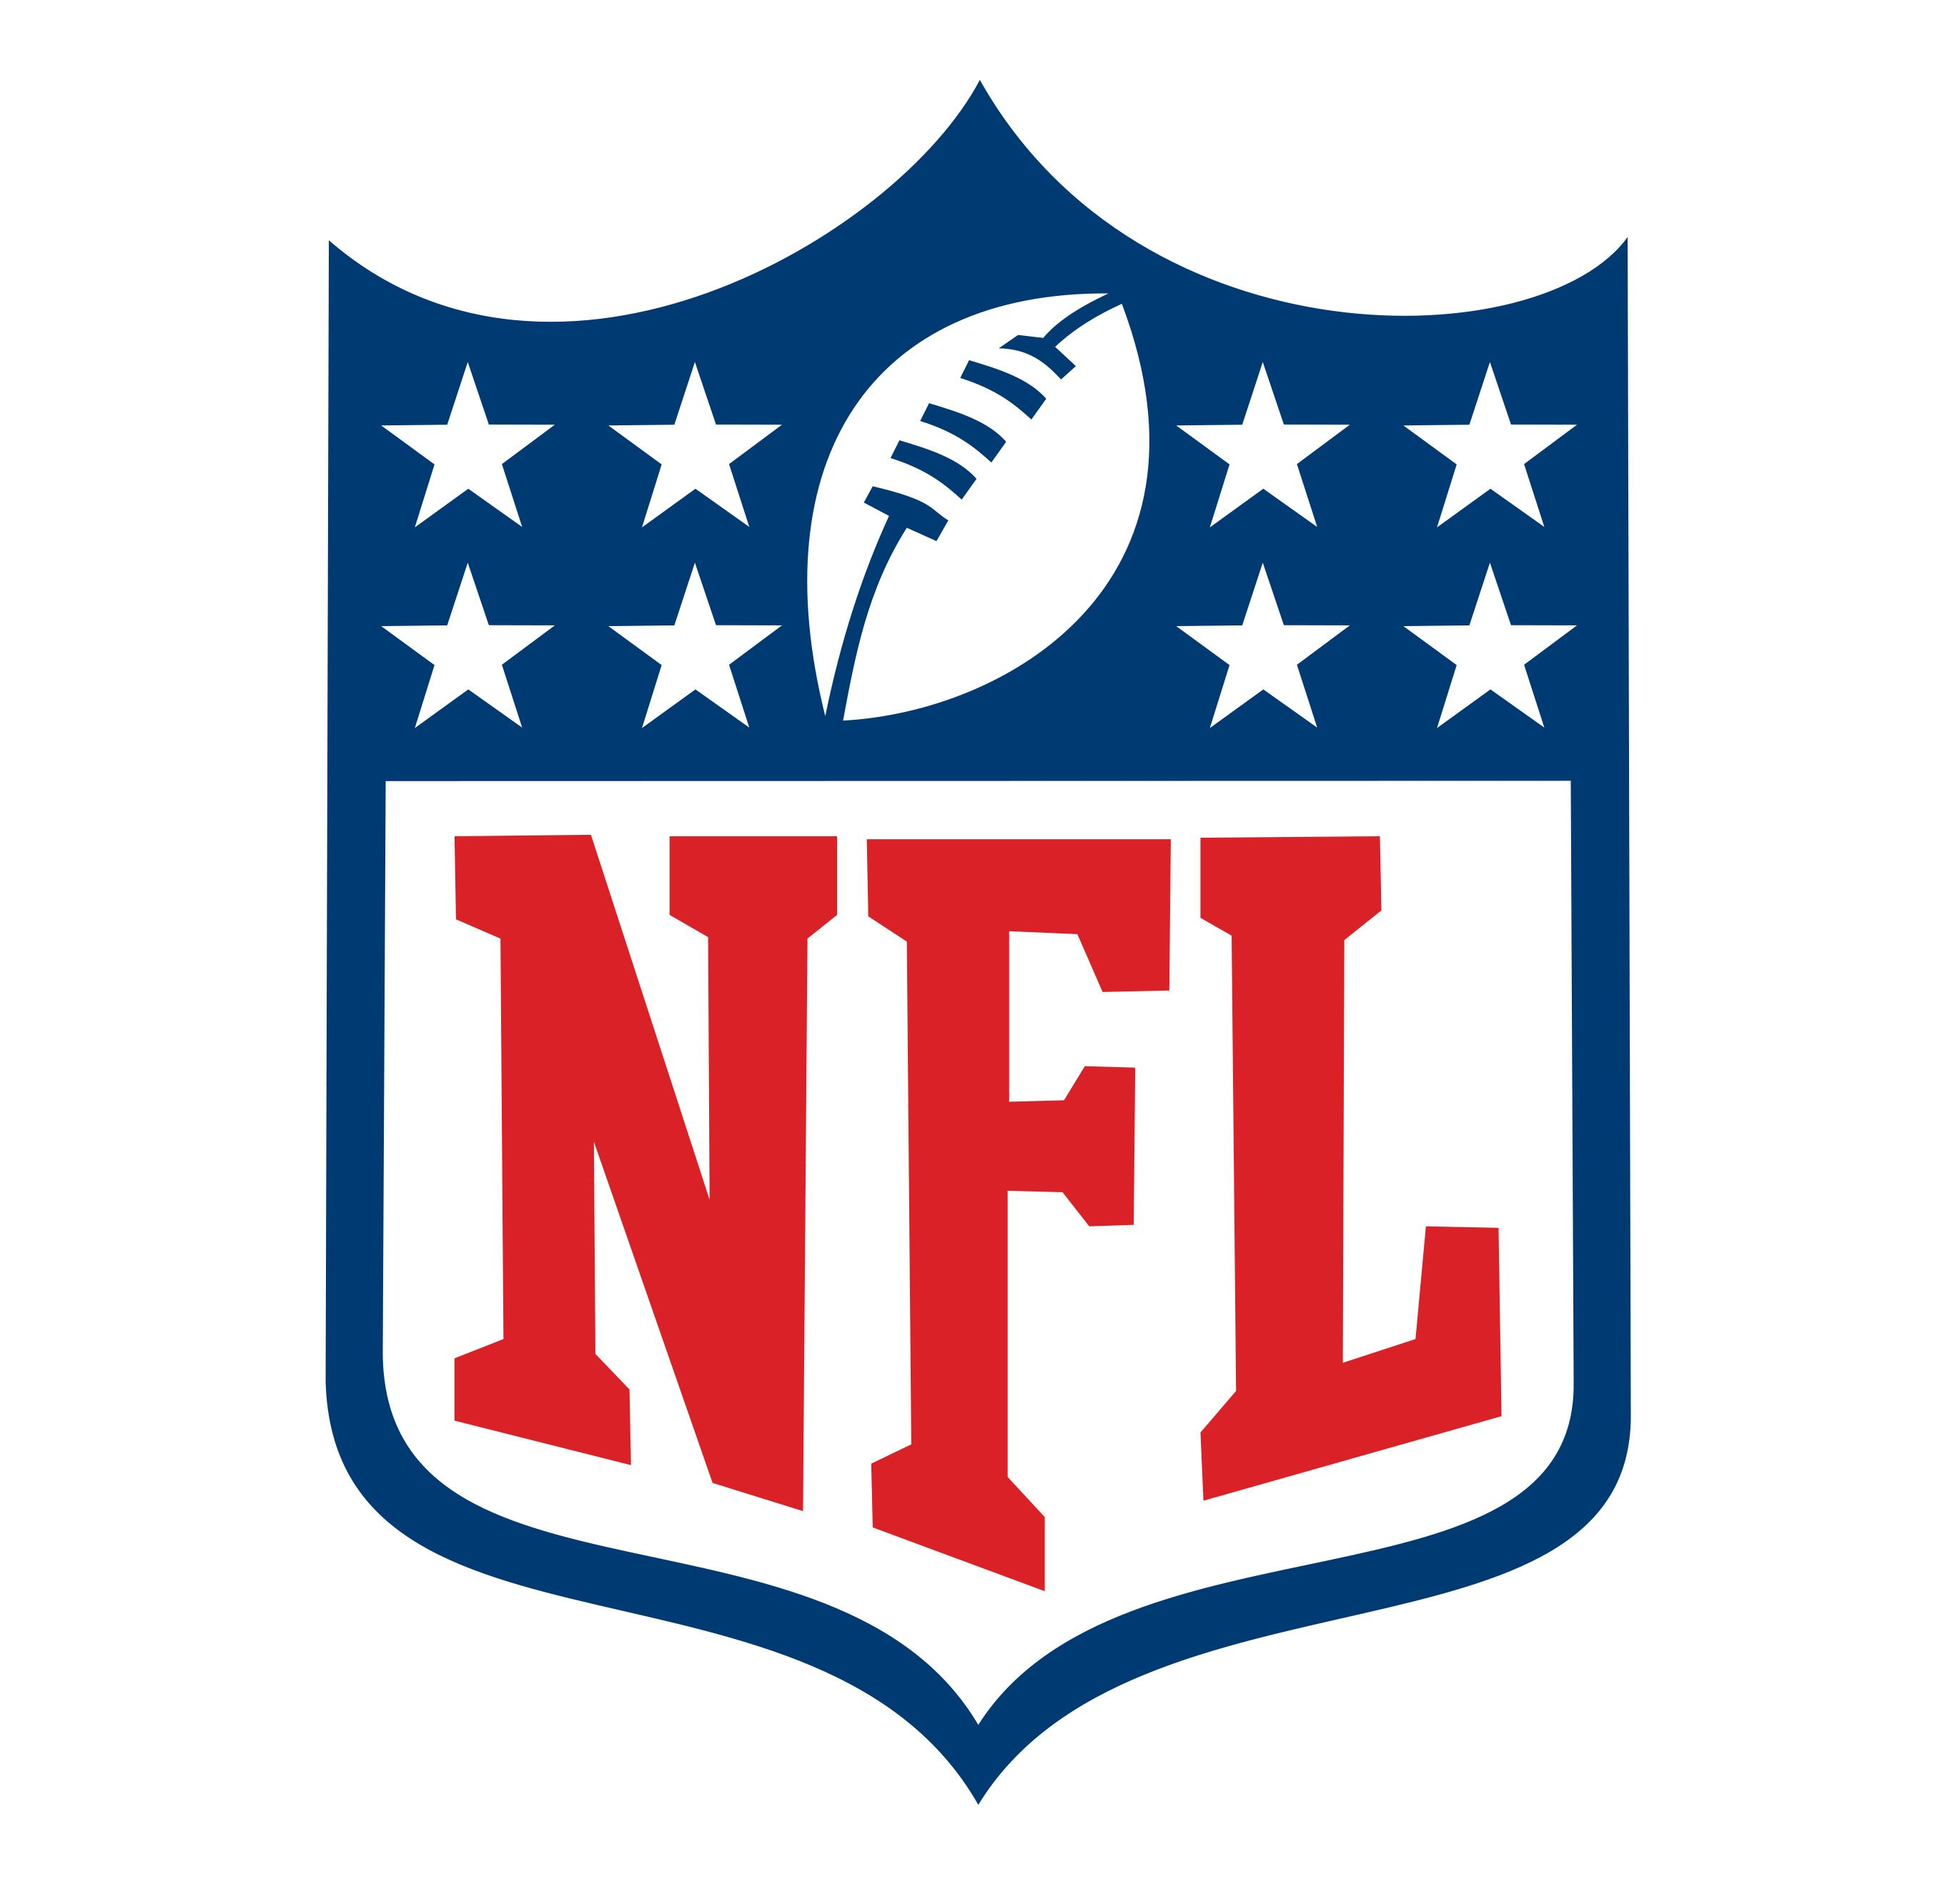 Grand Central Hotel Is Streaming Live The Nfl Season This Thursday September 7th Free Of Charge To All Guests Buying Foo Nfl Logo Football League Nfl Football